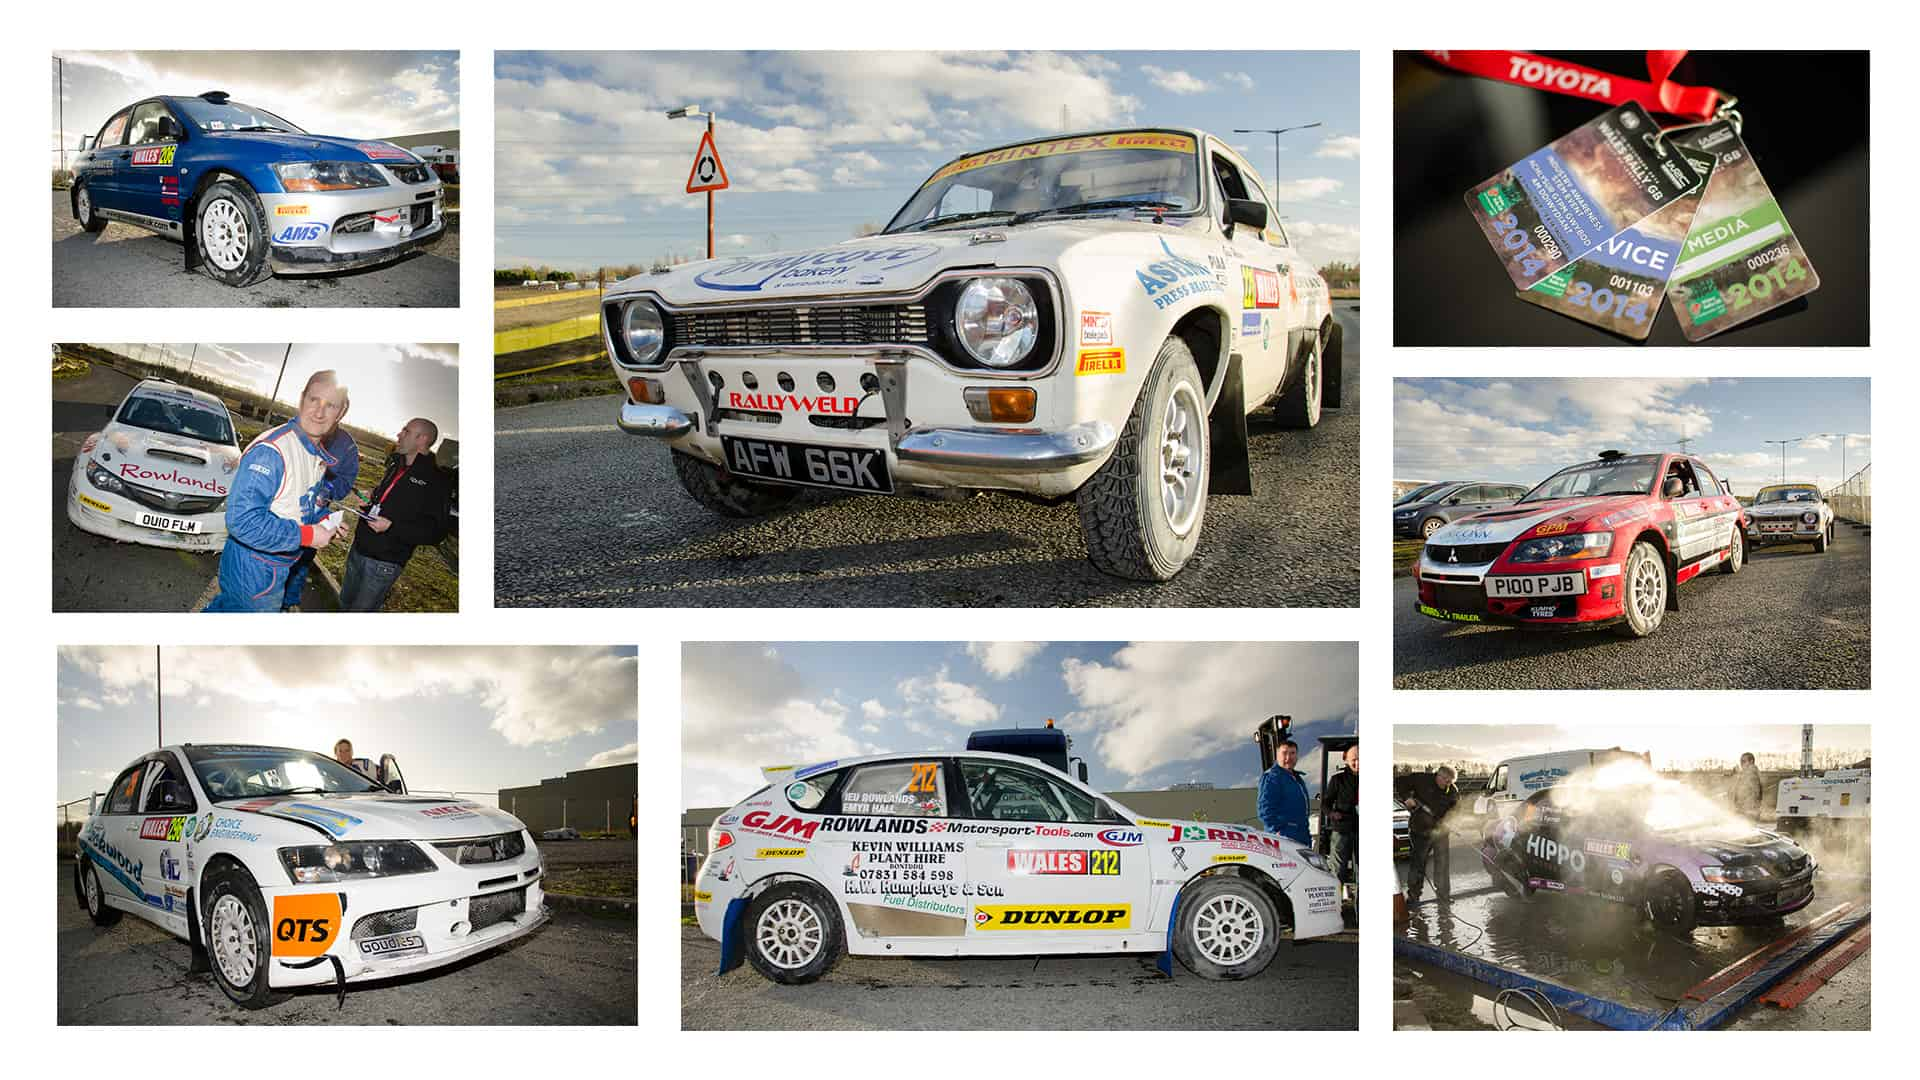 World Rally Championship photography for Toyota